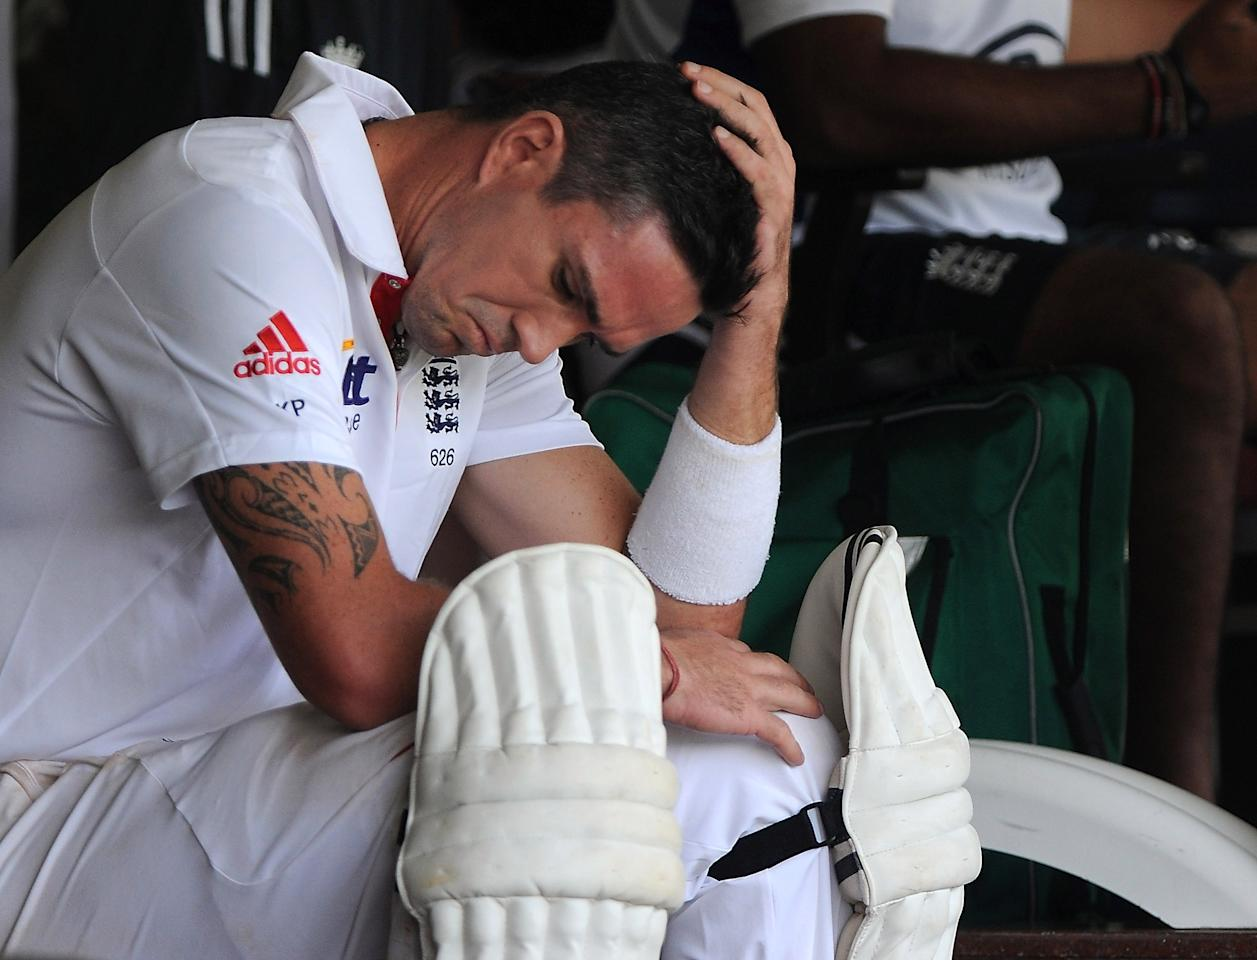 MUMBAI, INDIA - OCTOBER 31:  Kevin Pietersen of England sits outside the dressing room as he waits to bat during the second day of the first tour match between India A and England at the CCI (Cricket Club of India) Ground on October 31, 2012 in Mumbai, India.  (Photo by Pal Pillai/Getty Images)